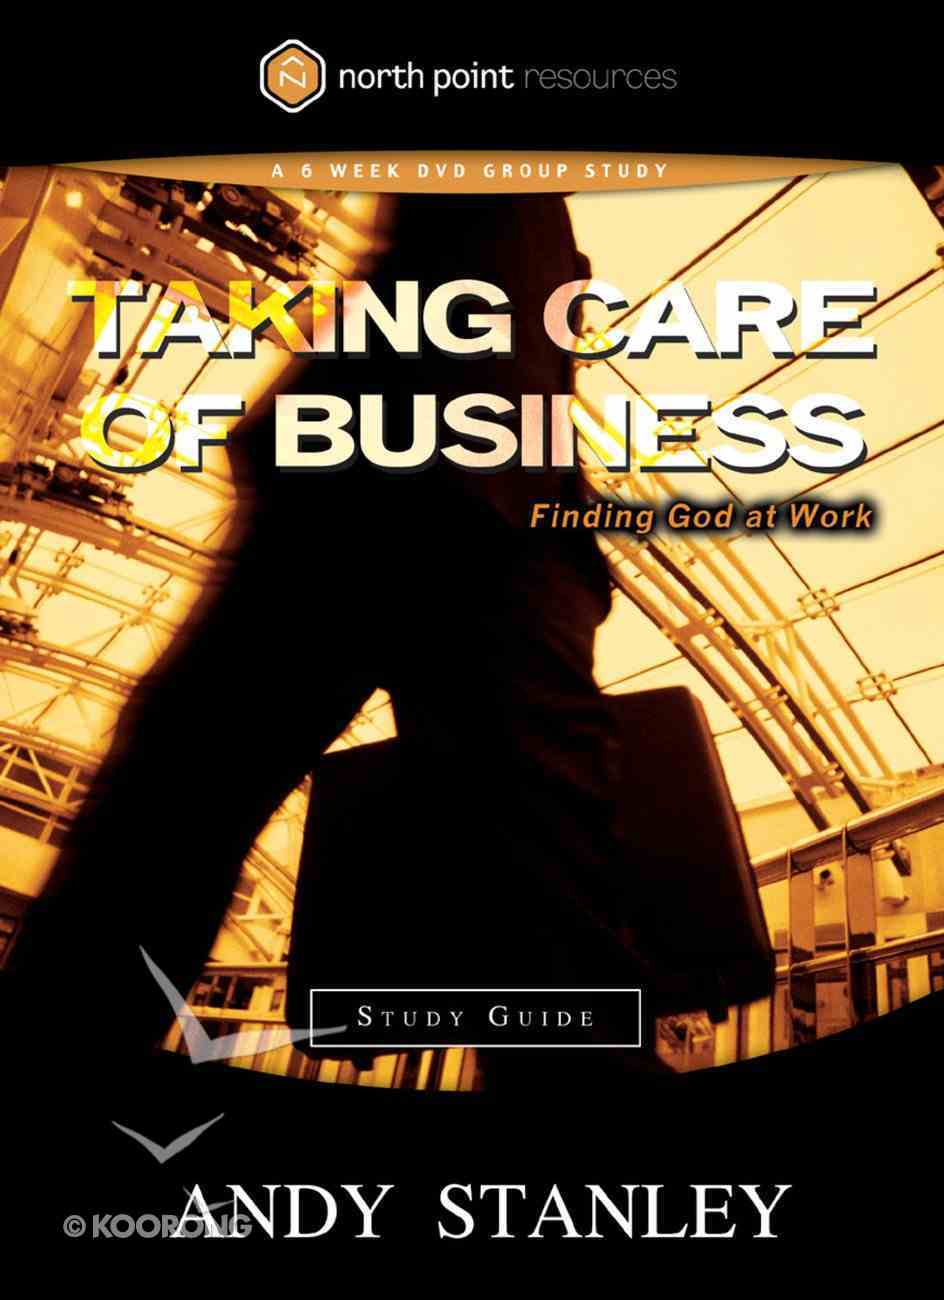 Taking Care of Business (Study Guide) (North Point Resources Series) Paperback